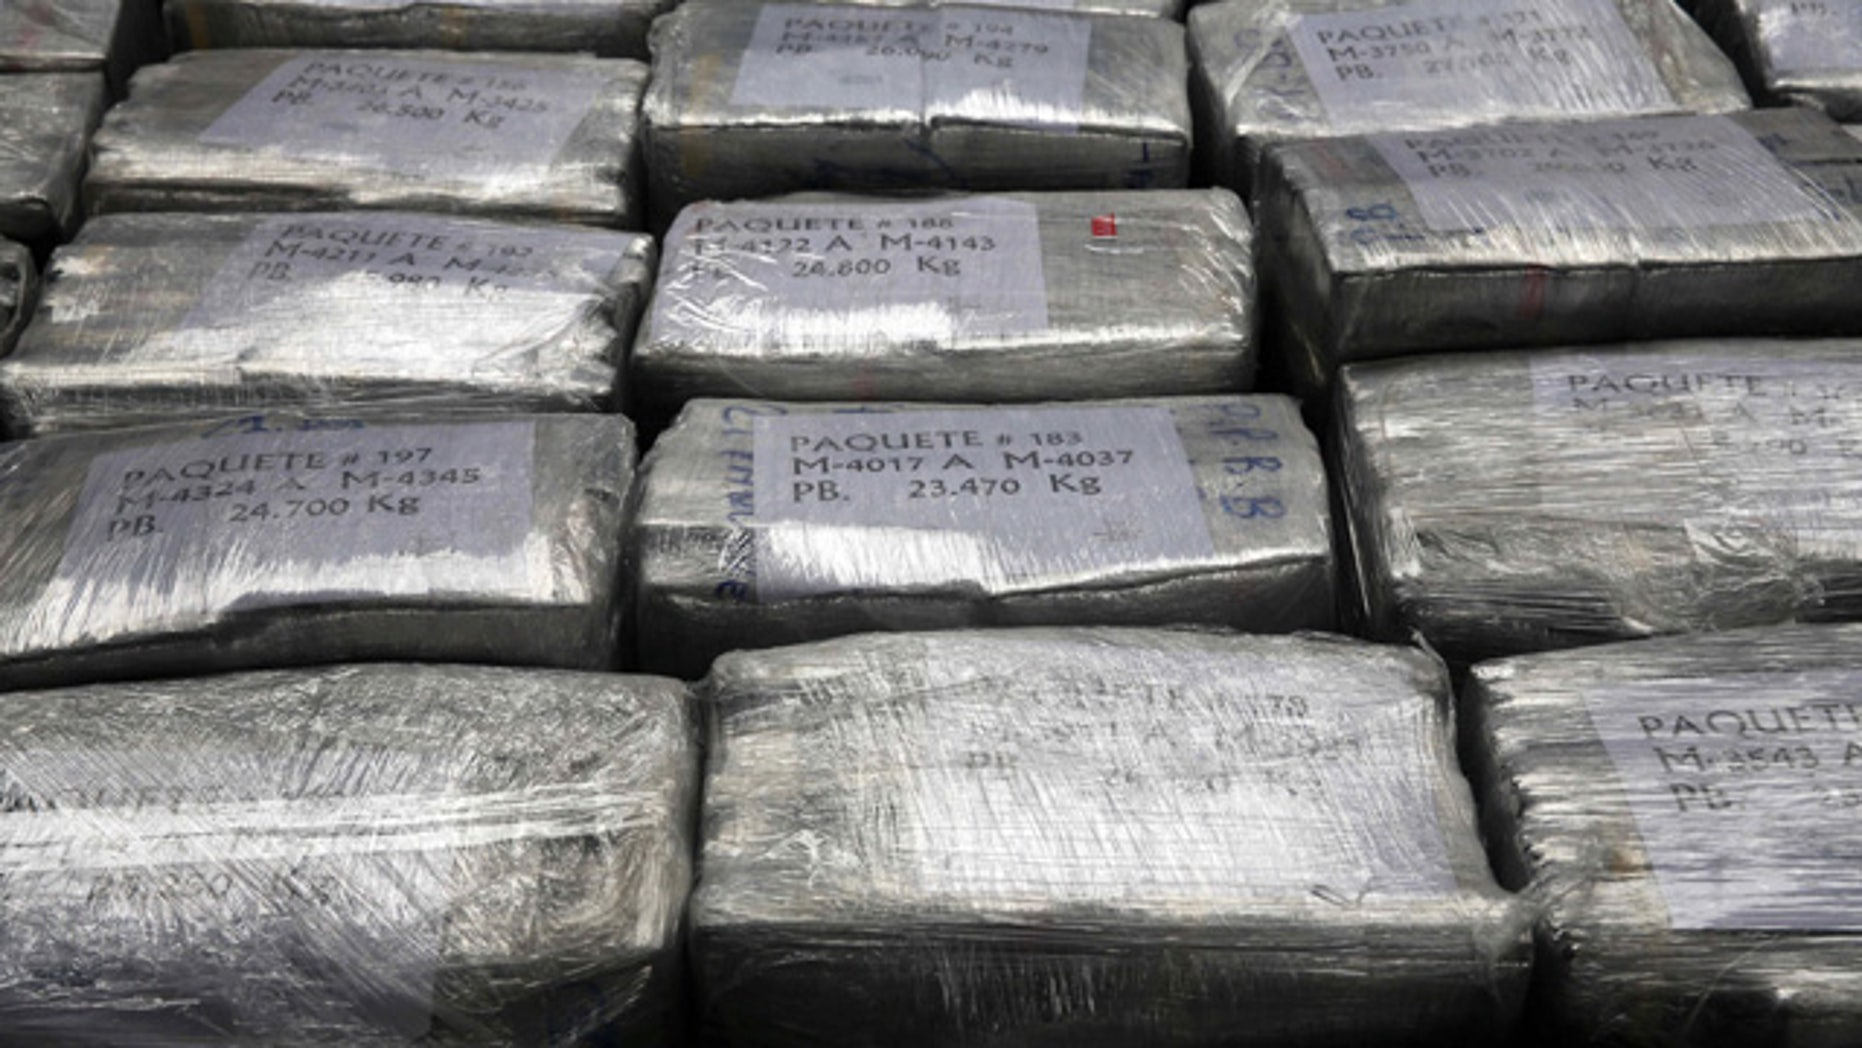 September 1, 2014: Blocks of seized cocaine are presented to the press at a police base in Lima, Peru. According to police, the packages are part of a 8.5 ton cocaine seizure made in the northern town of Trujillo on Aug. 26, and is the largest cocaine seizure in Peru's history. (AP Photo/Martin Mejia)